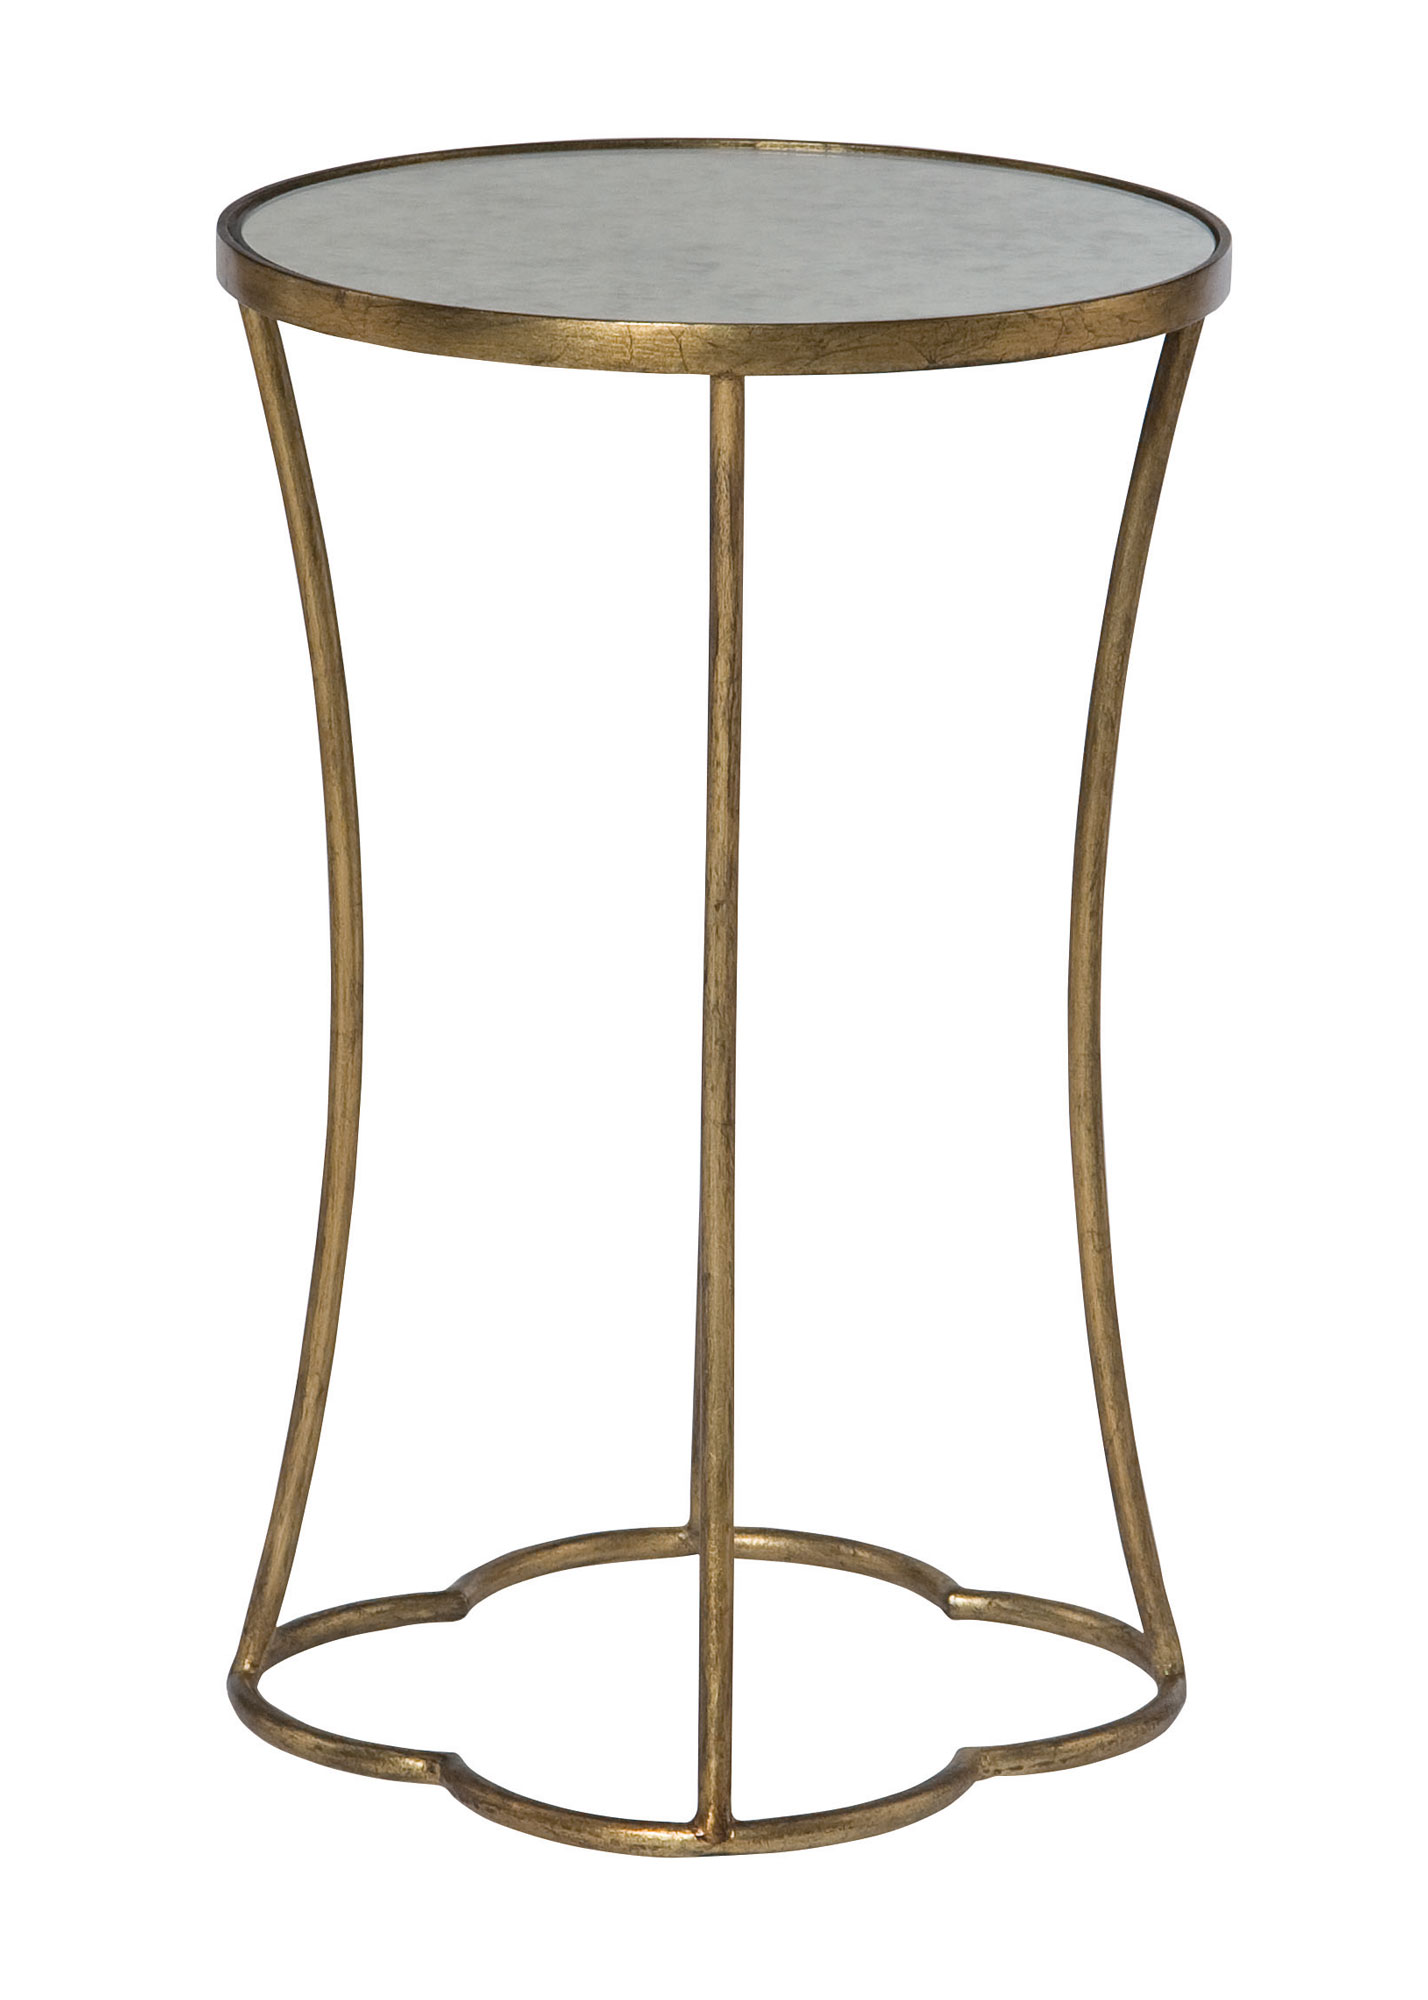 alluring unique round accent tables room distressed antique white target threshold and table glynn foyer ott gold living furniture metal decorative storage glass tray modern for